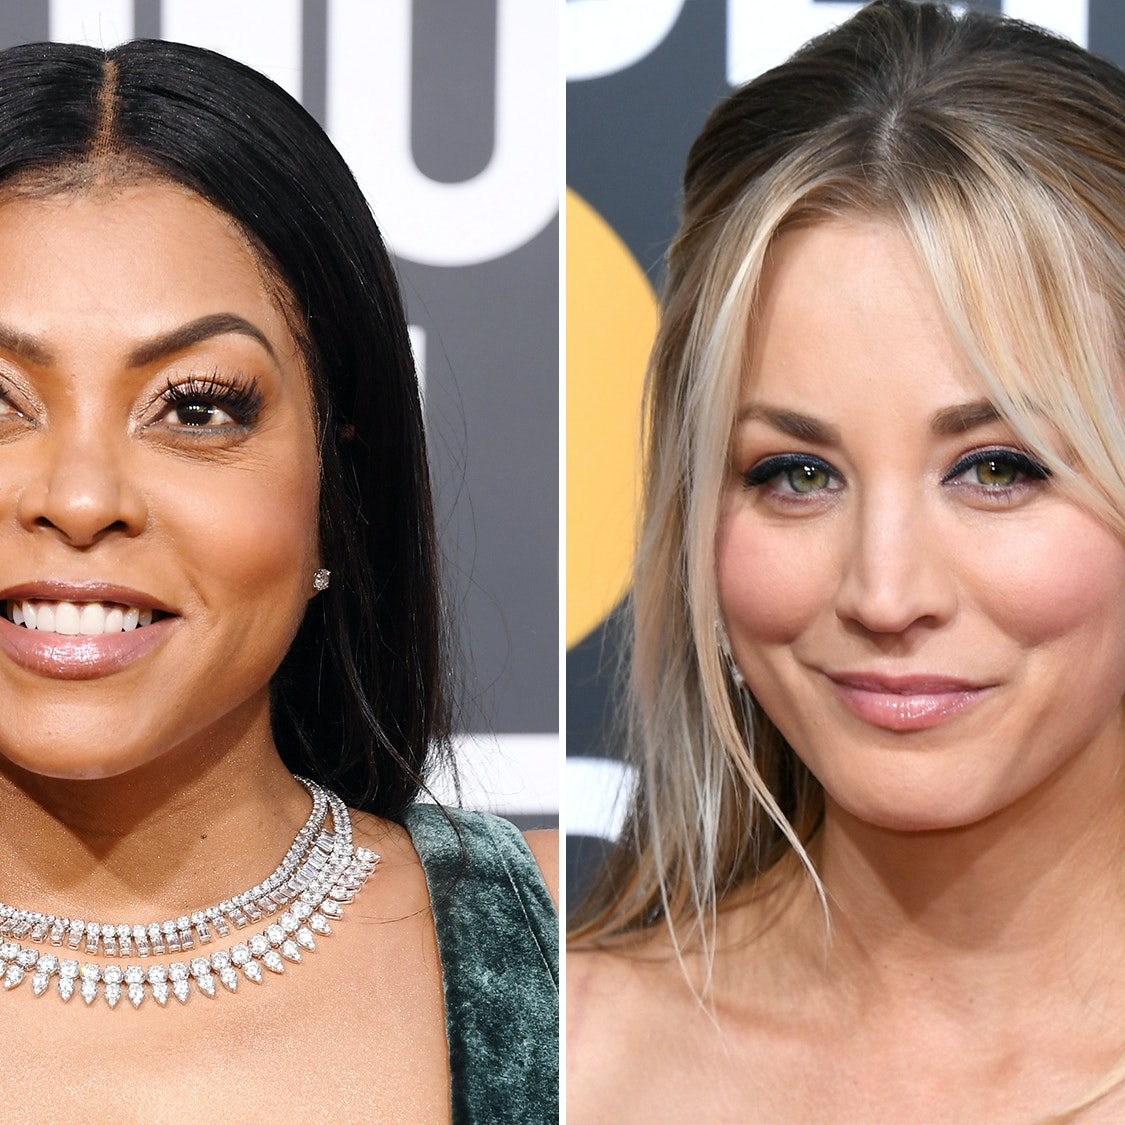 The Unexpected Skincare Trick Taraji P. Henson and Kaley Cuoco Relied on Before the 2019 Golden Globes